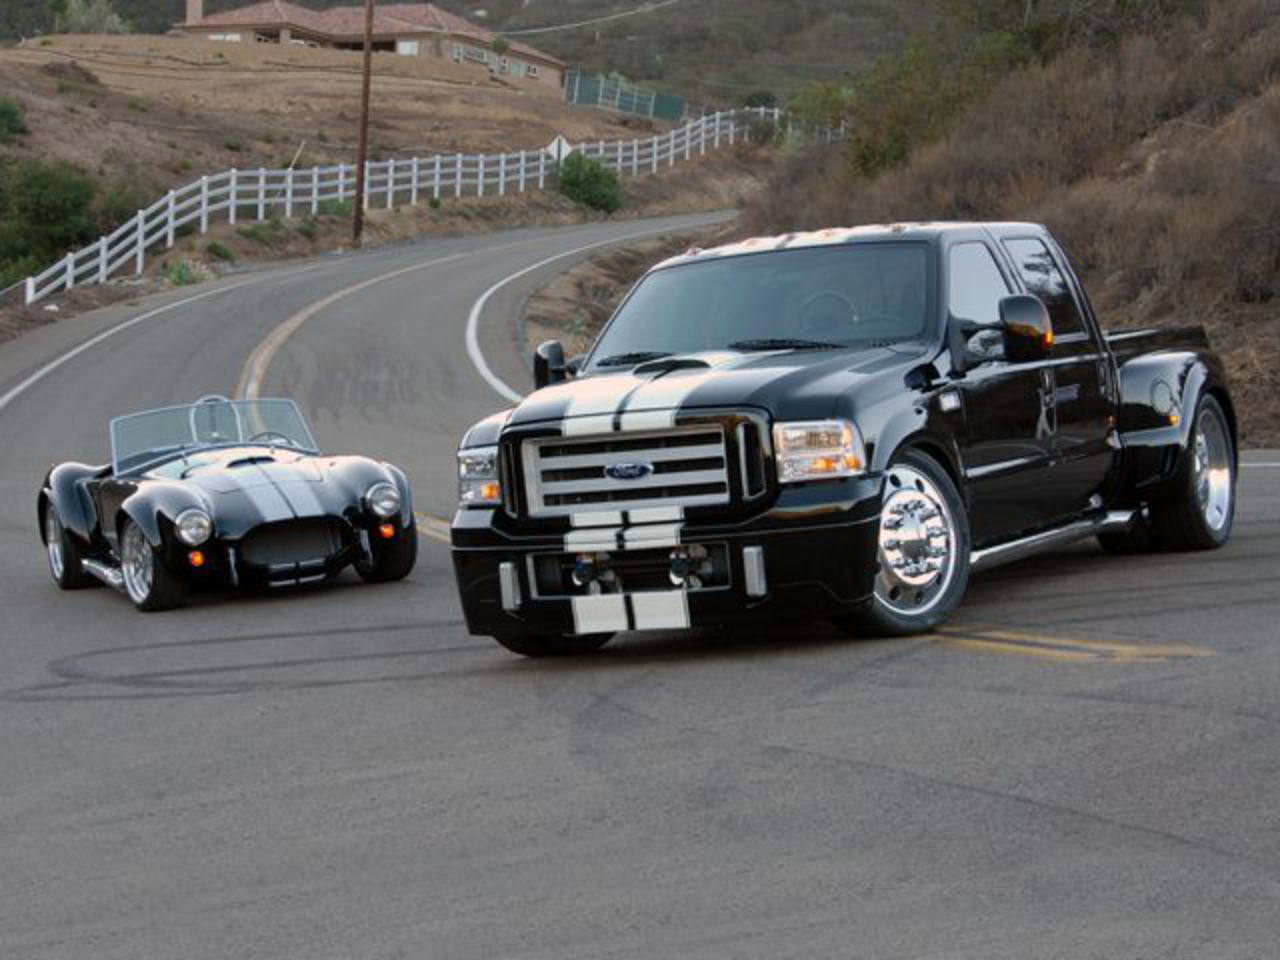 Ford F-750XL Super Duty - cars catalog, specs, features, photos, videos,